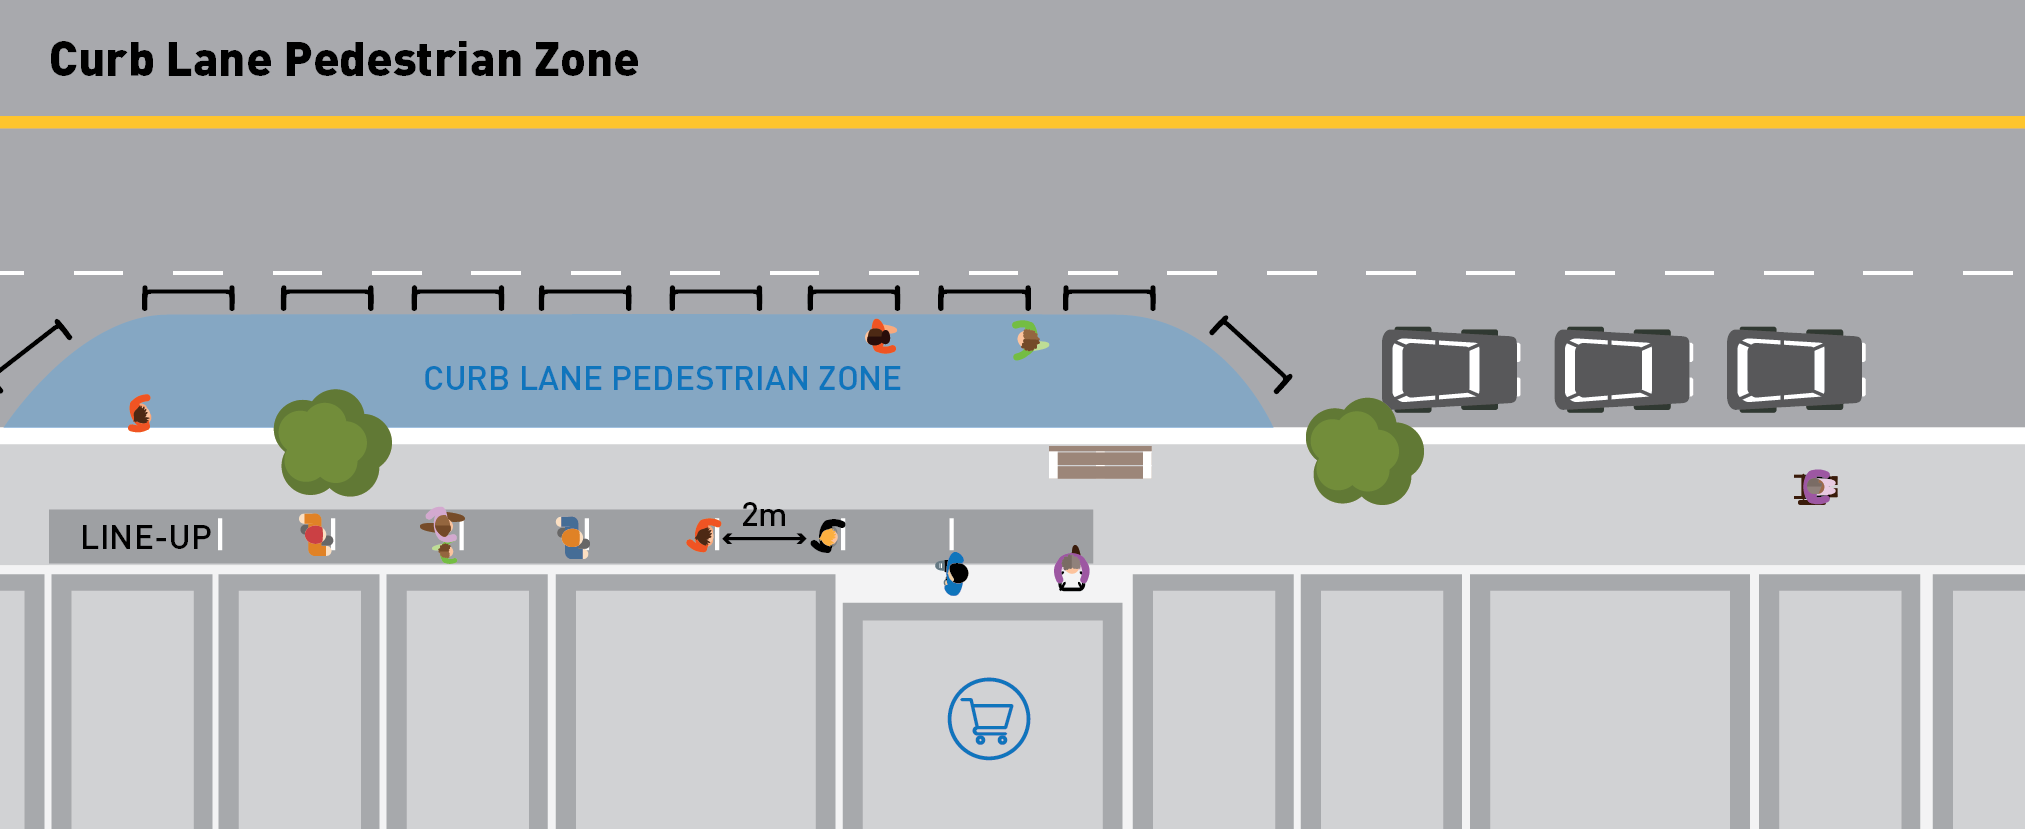 Illustration showing pedestrians lined up on the sidewalk maintaining 6 feet of distance while they wait to enter a grocery store and along the curb lane a dedicated zone put in place where pedestrians can avoid the sidewalk line ups by using the roadway as an extended walkway. The curb lane is surrounded by barriers to protect pedestrians from live traffic.